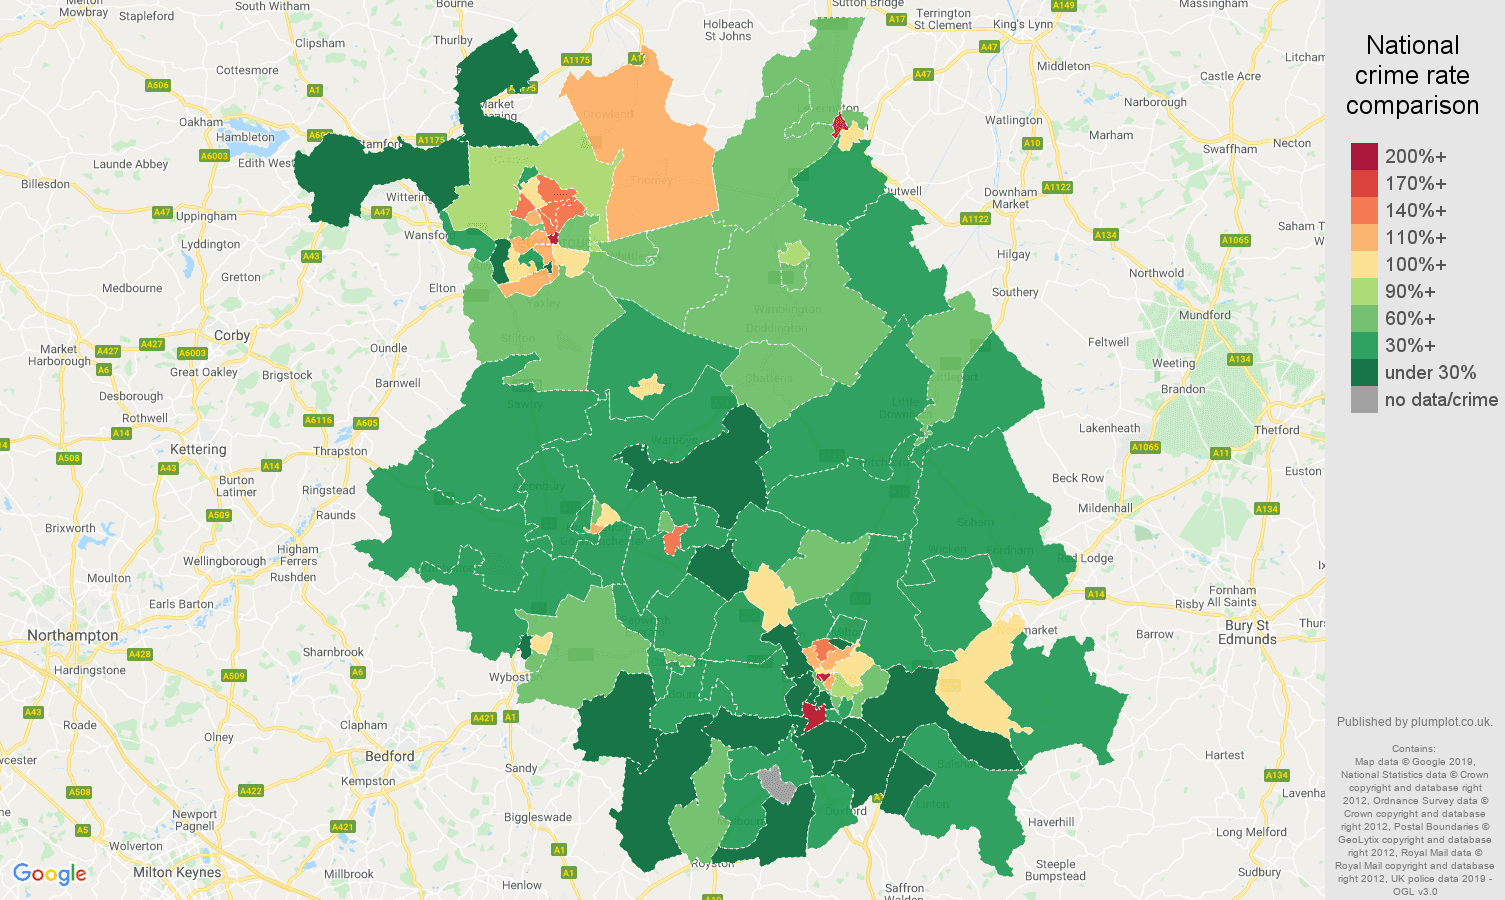 Cambridgeshire public order crime rate comparison map